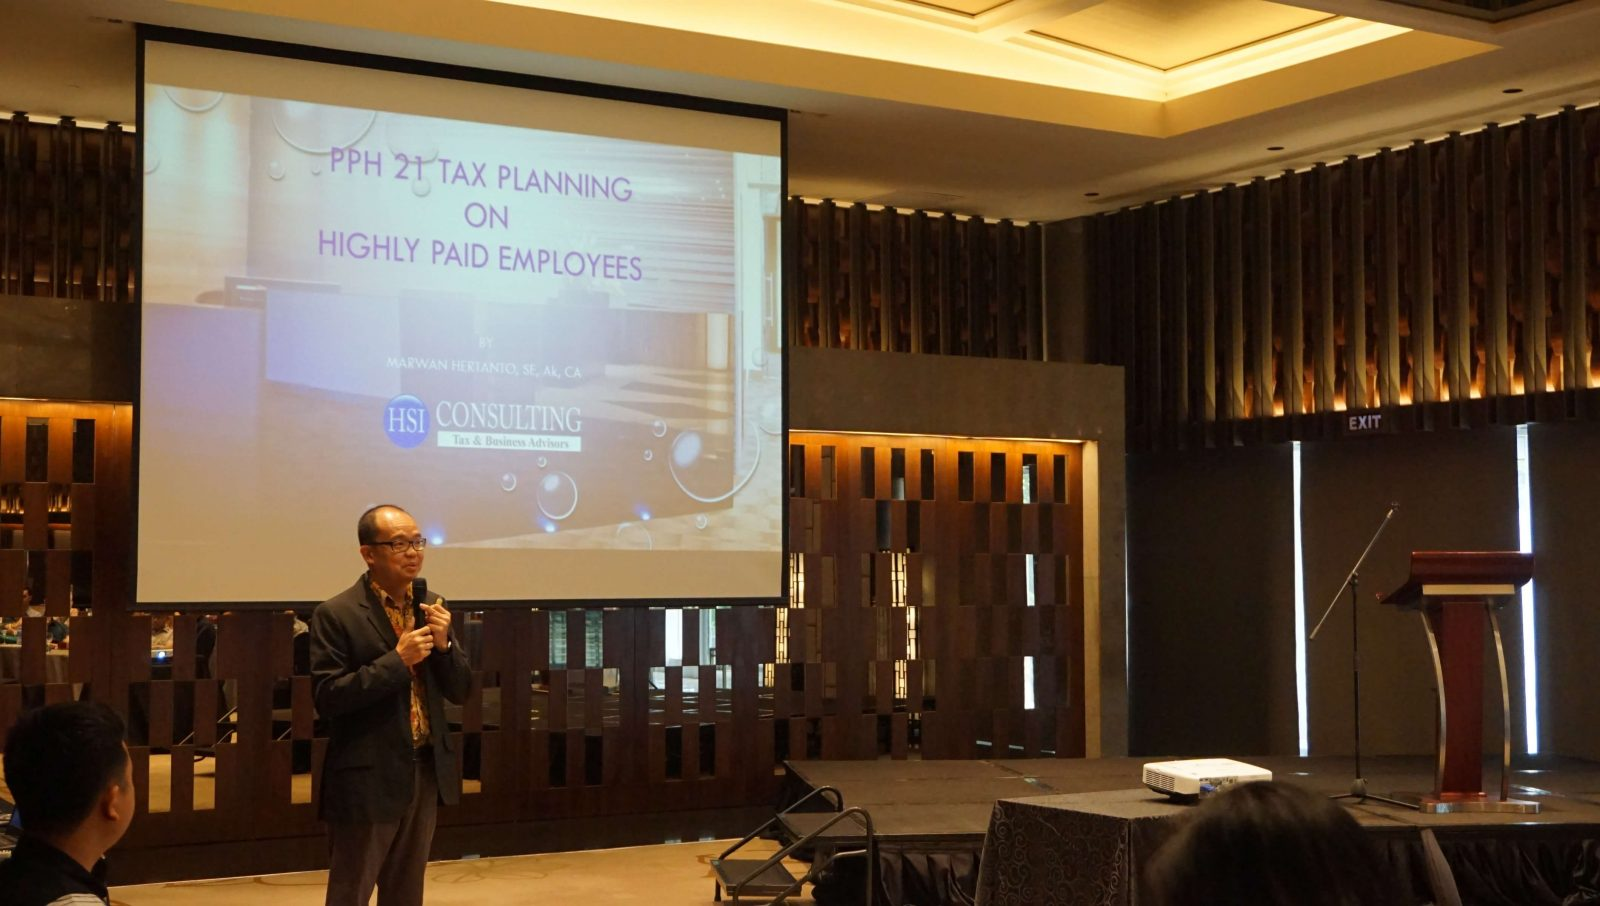 tax planning, HR 101, marwan hertanto